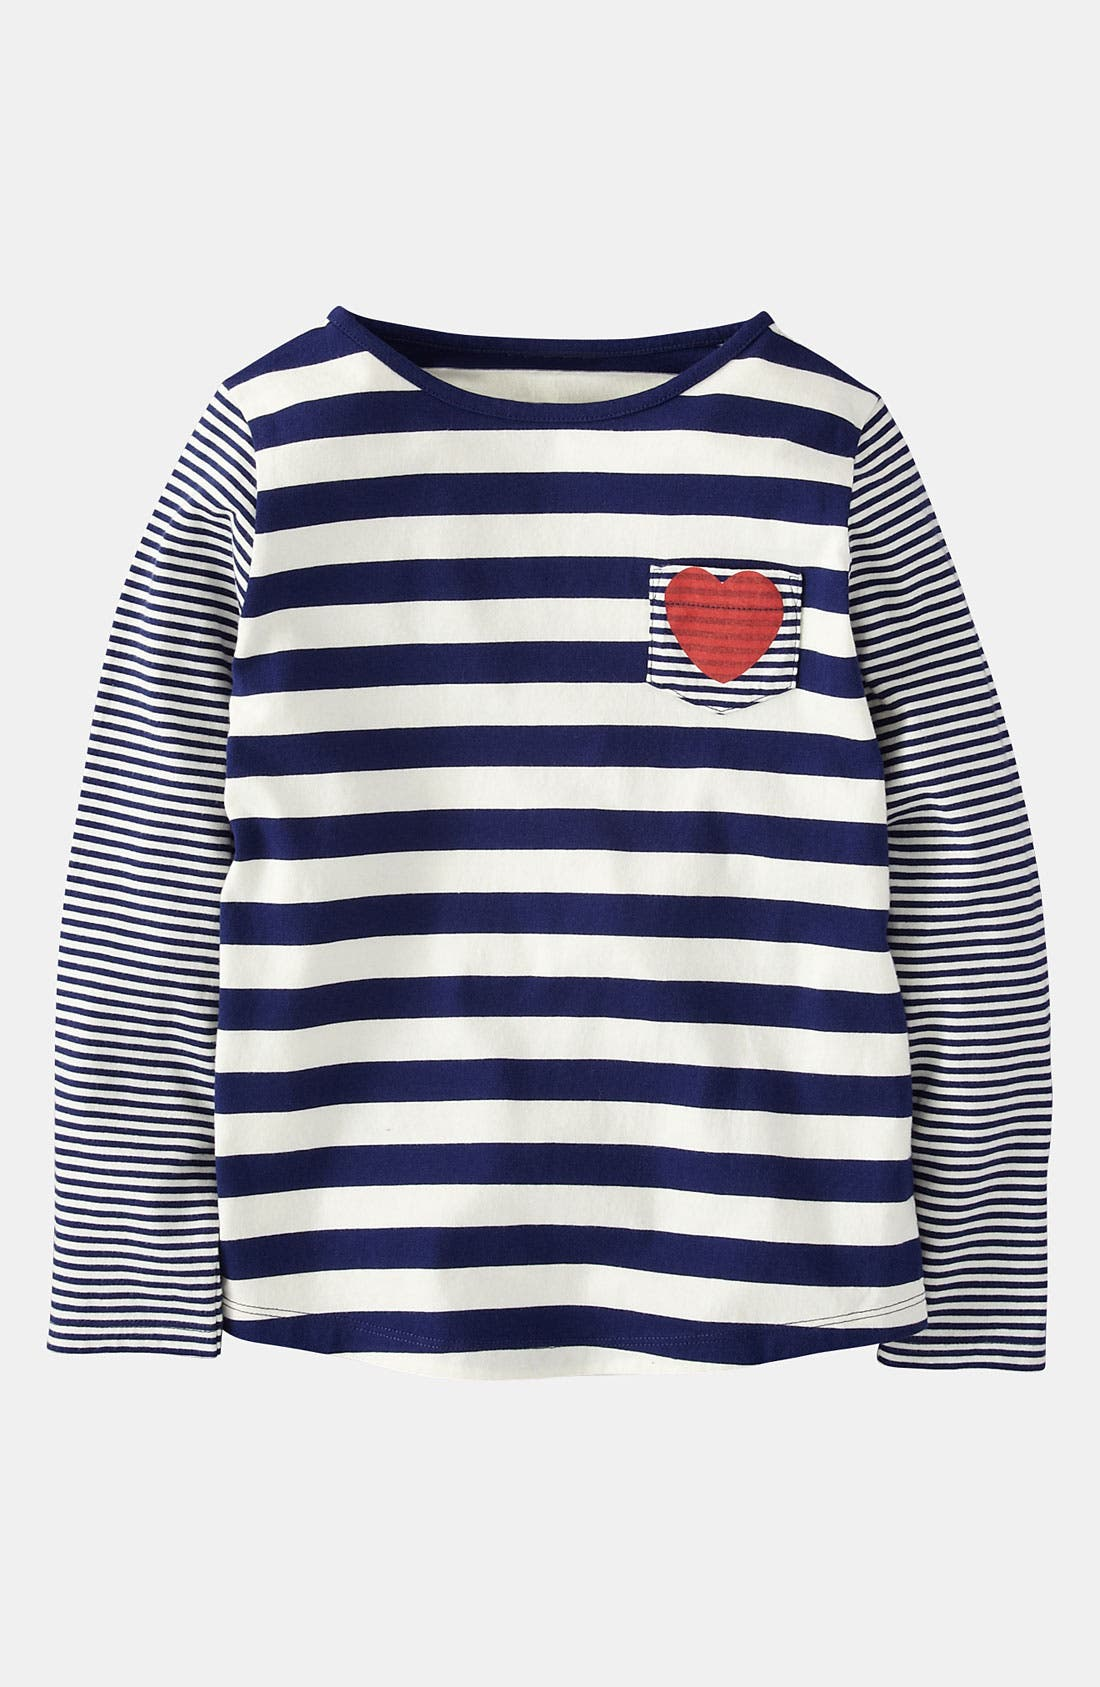 Alternate Image 1 Selected - Mini Boden 'Hotchpotch' Stripe Top (Little Girls & Big Girls)